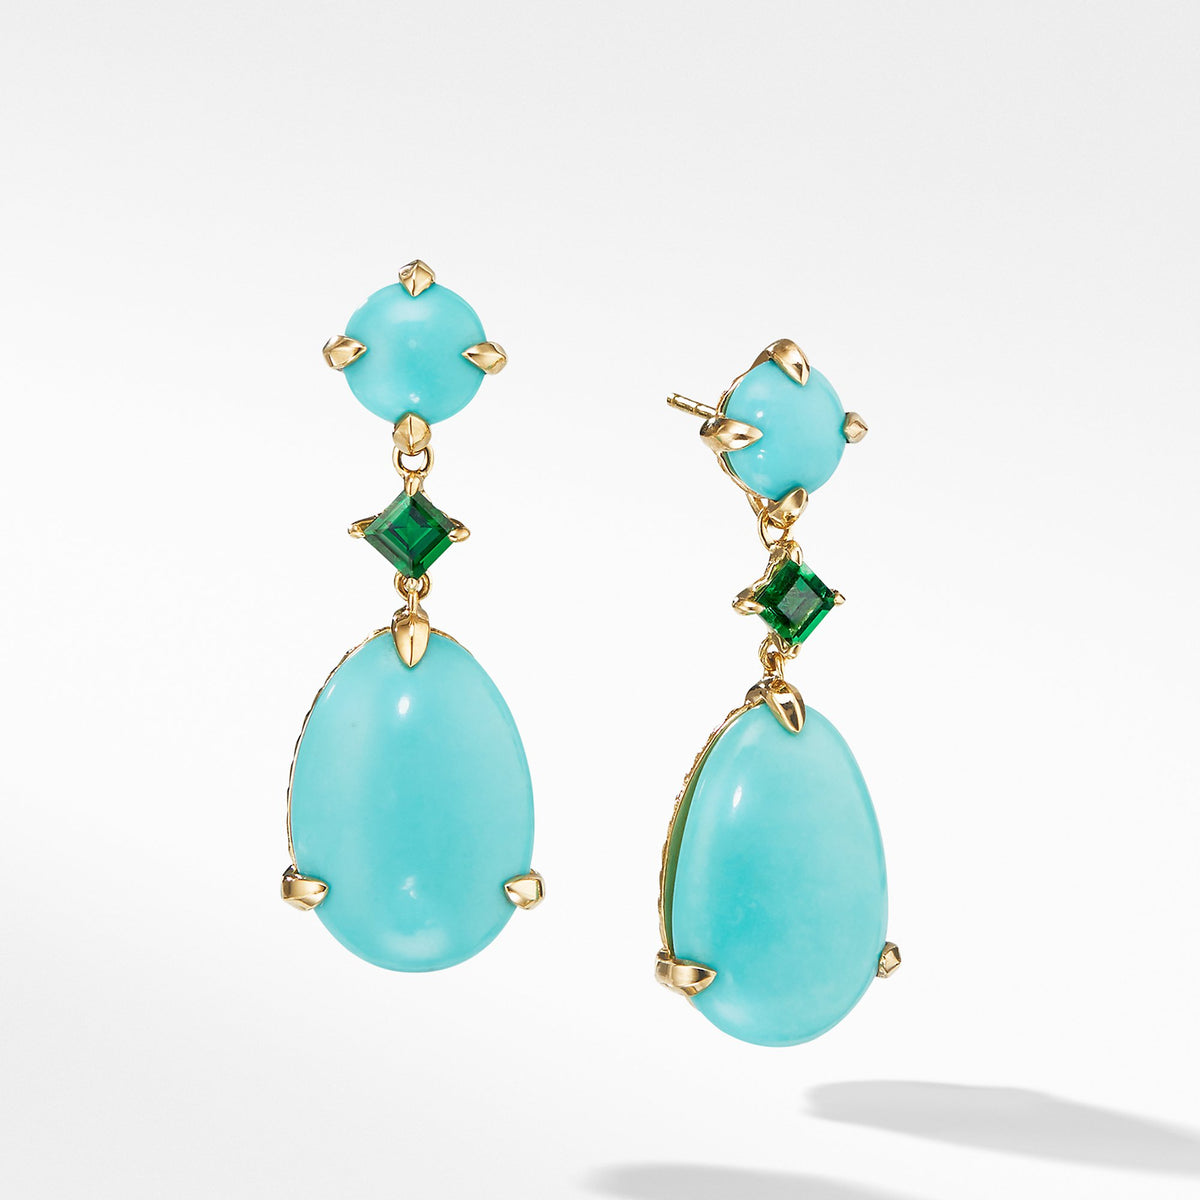 Chatelaine Drop Earrings in 18K Yellow Gold with Mexican Turquoise and Tsavorite